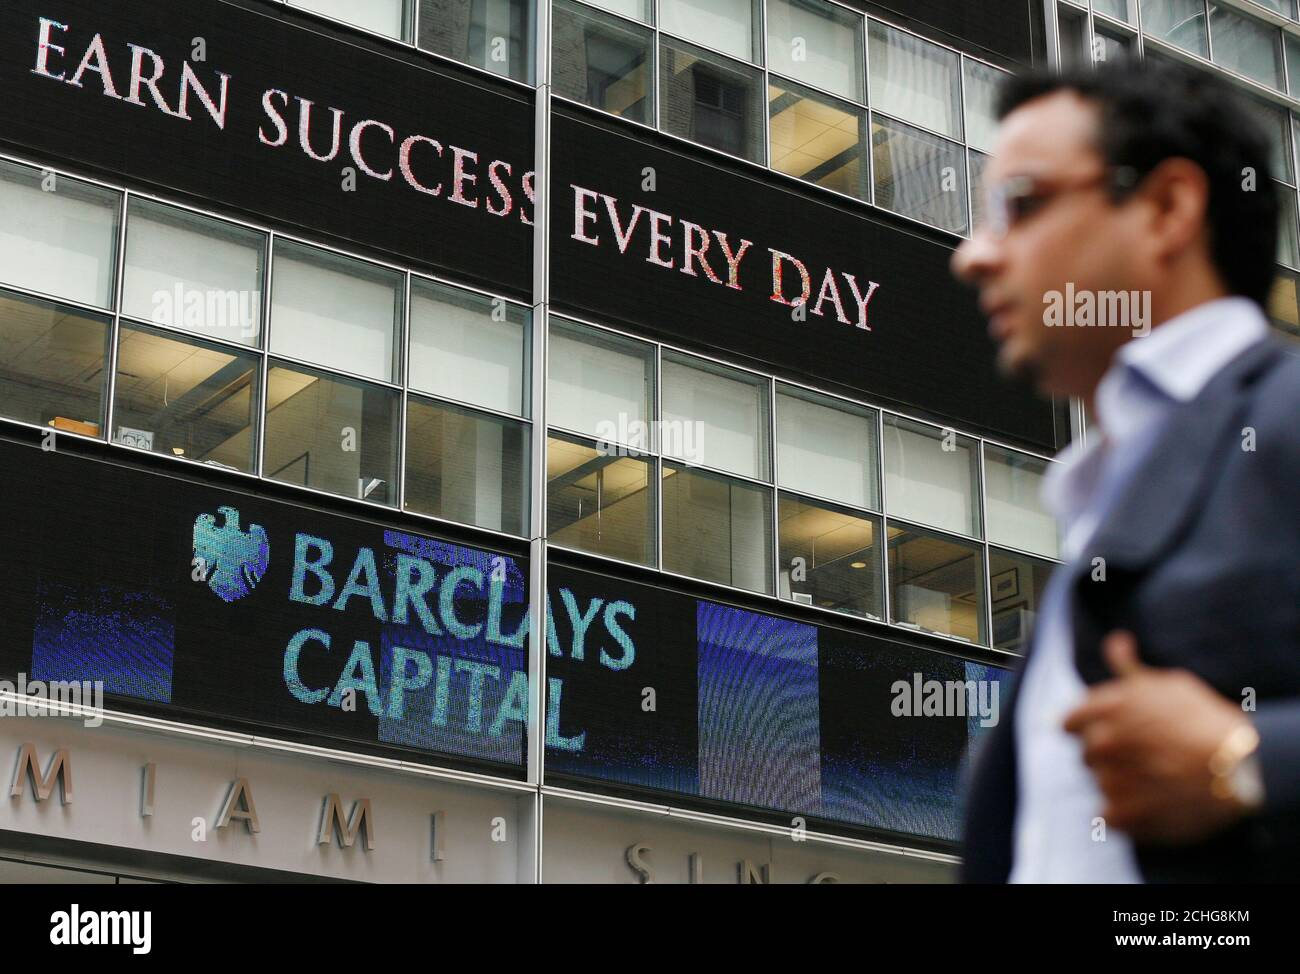 barclays investments snapshots by shannon